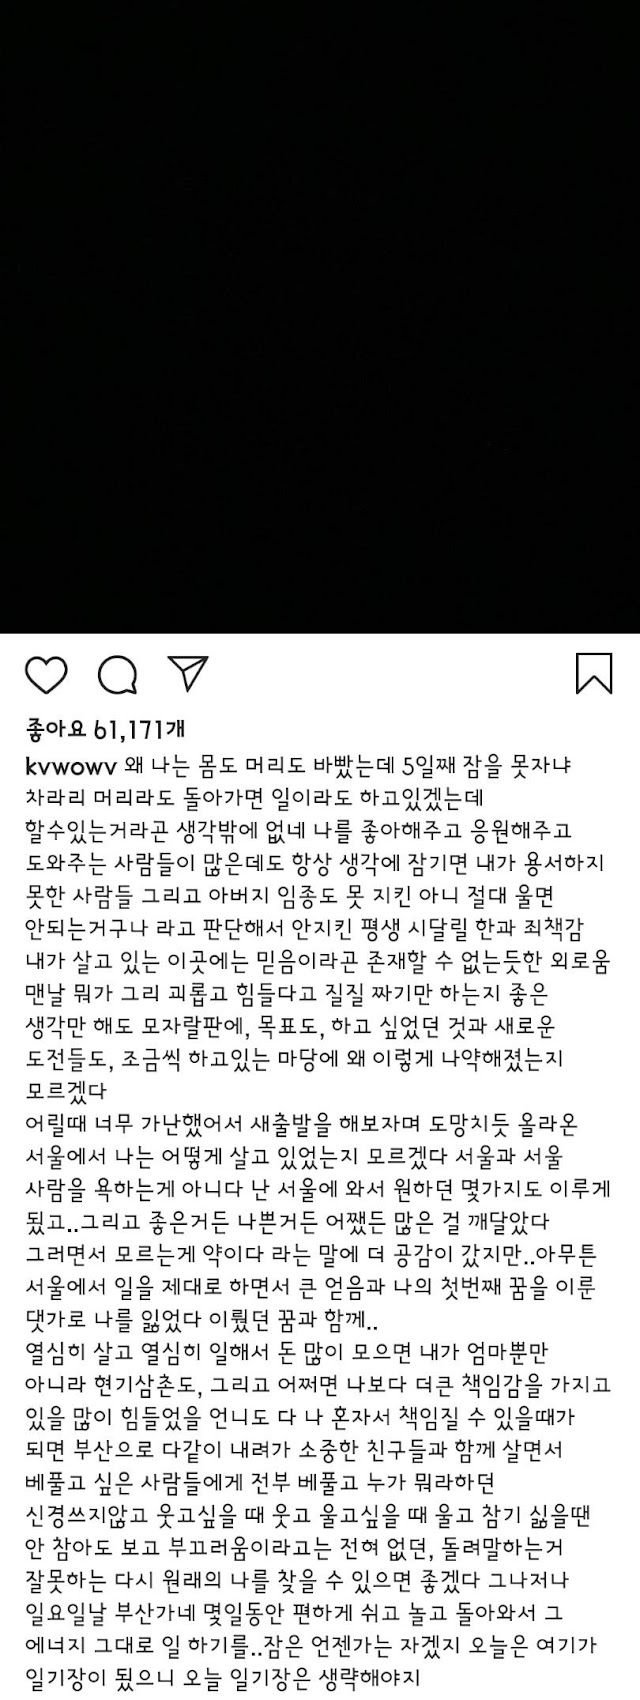 Knetz shares their thought about the latest Instagram Post of former member of AOA Kwon Mina.